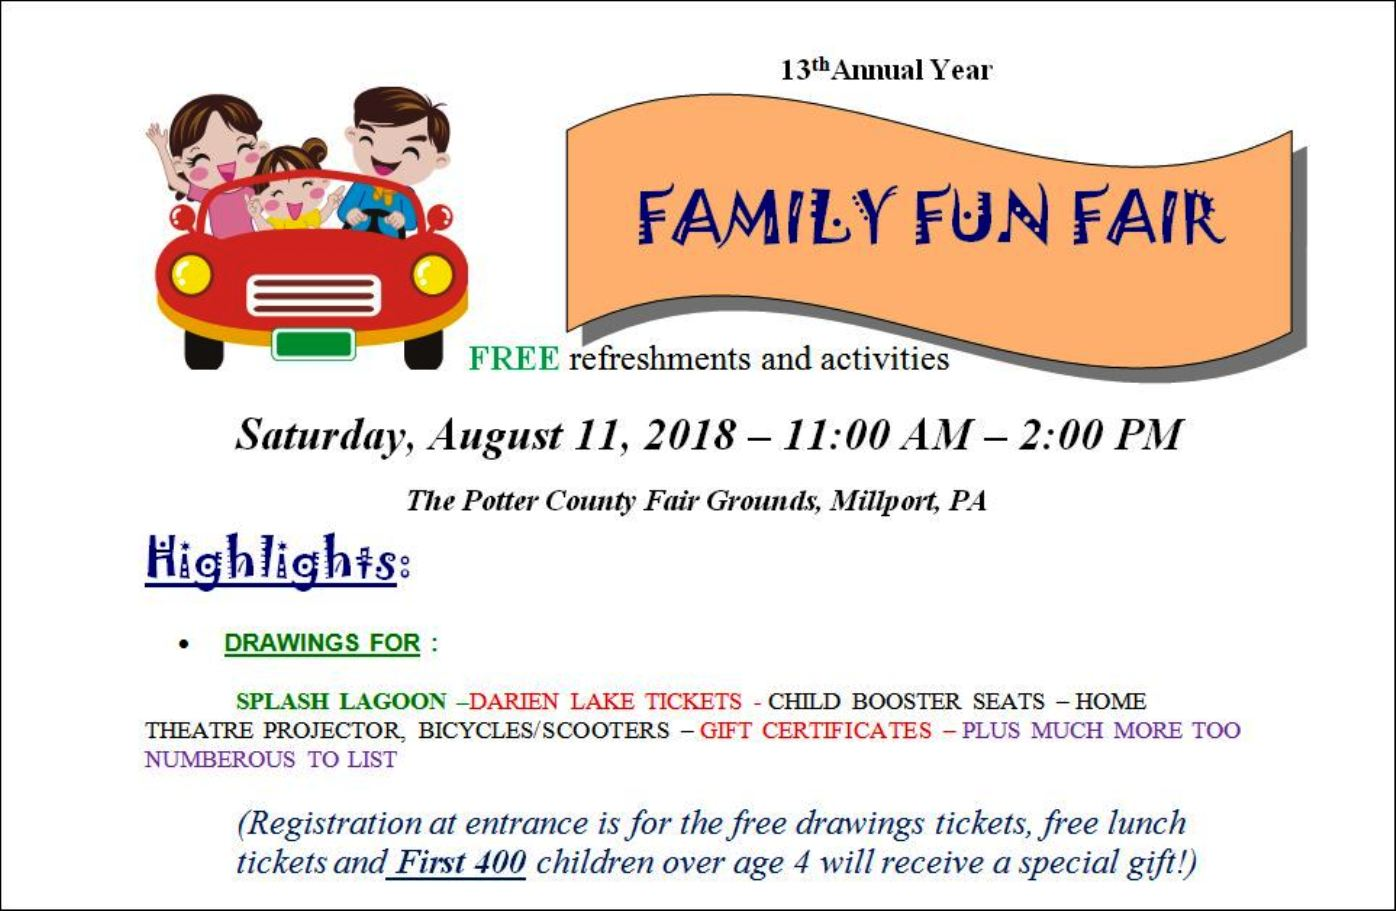 8-11 Family Fun Fair